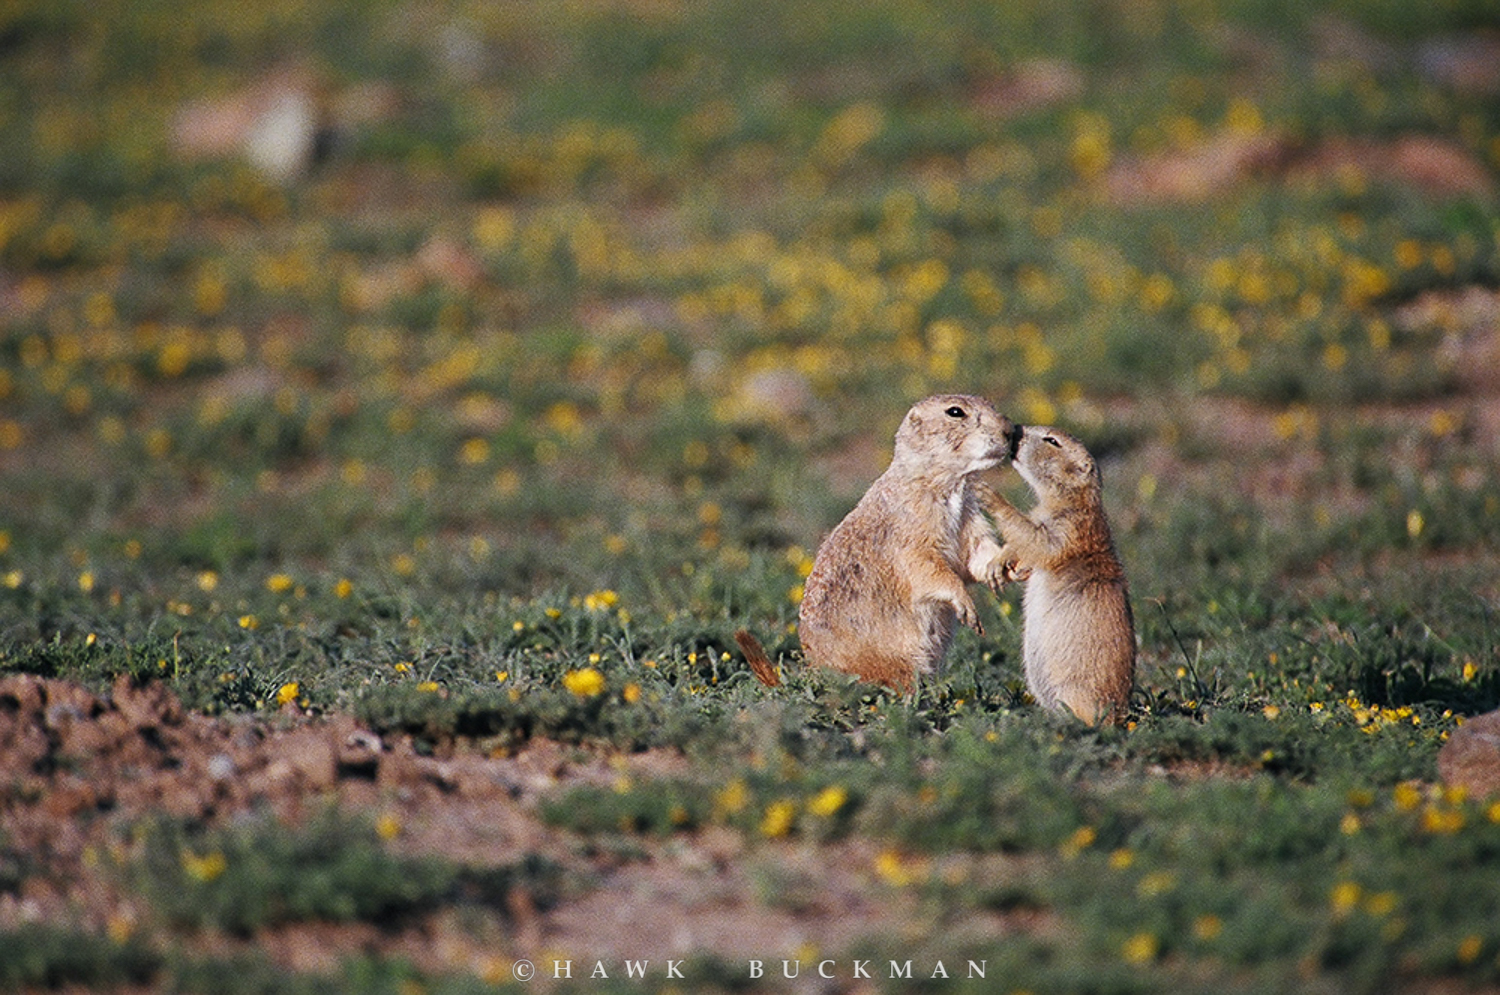 The lifespan in the wild for black-tailed prairie dogs is up to 8 years for females, and around 5 years for males. However, around half of prairie dogs in the wild do not survive their first year of life due to high rates of predation, subliming to pesticides and herbicides or simply being targeted by gun enthusiasts for shooting sport. Prairie dogs in human care can live over 8 years.